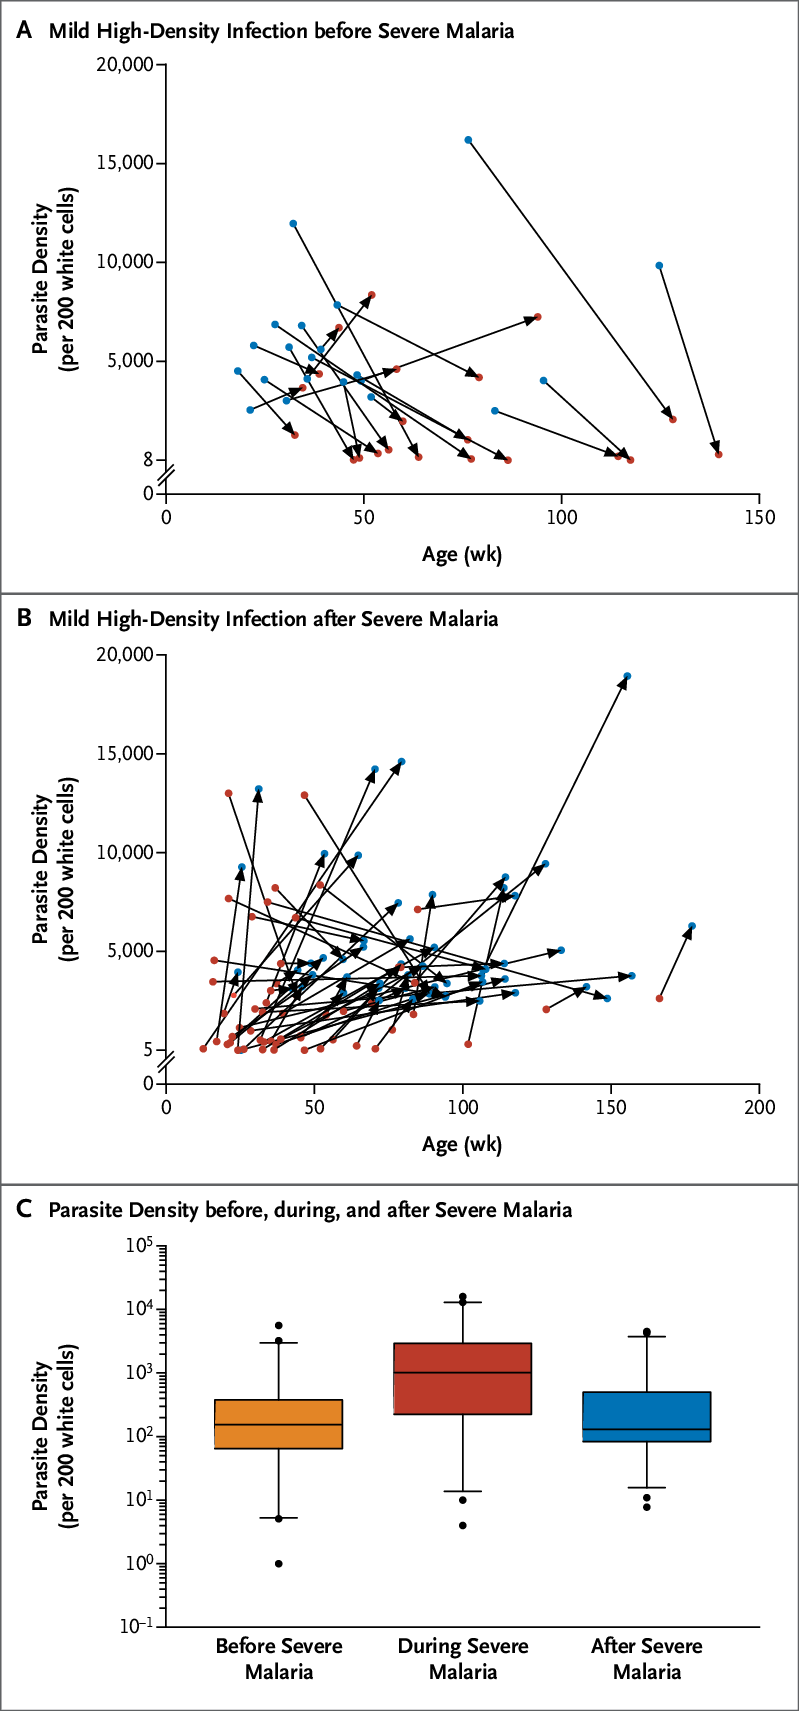 medium resolution of risk of severe malaria and parasite density panel a shows high density infections with only mild symptoms blue circles that occurred before severe